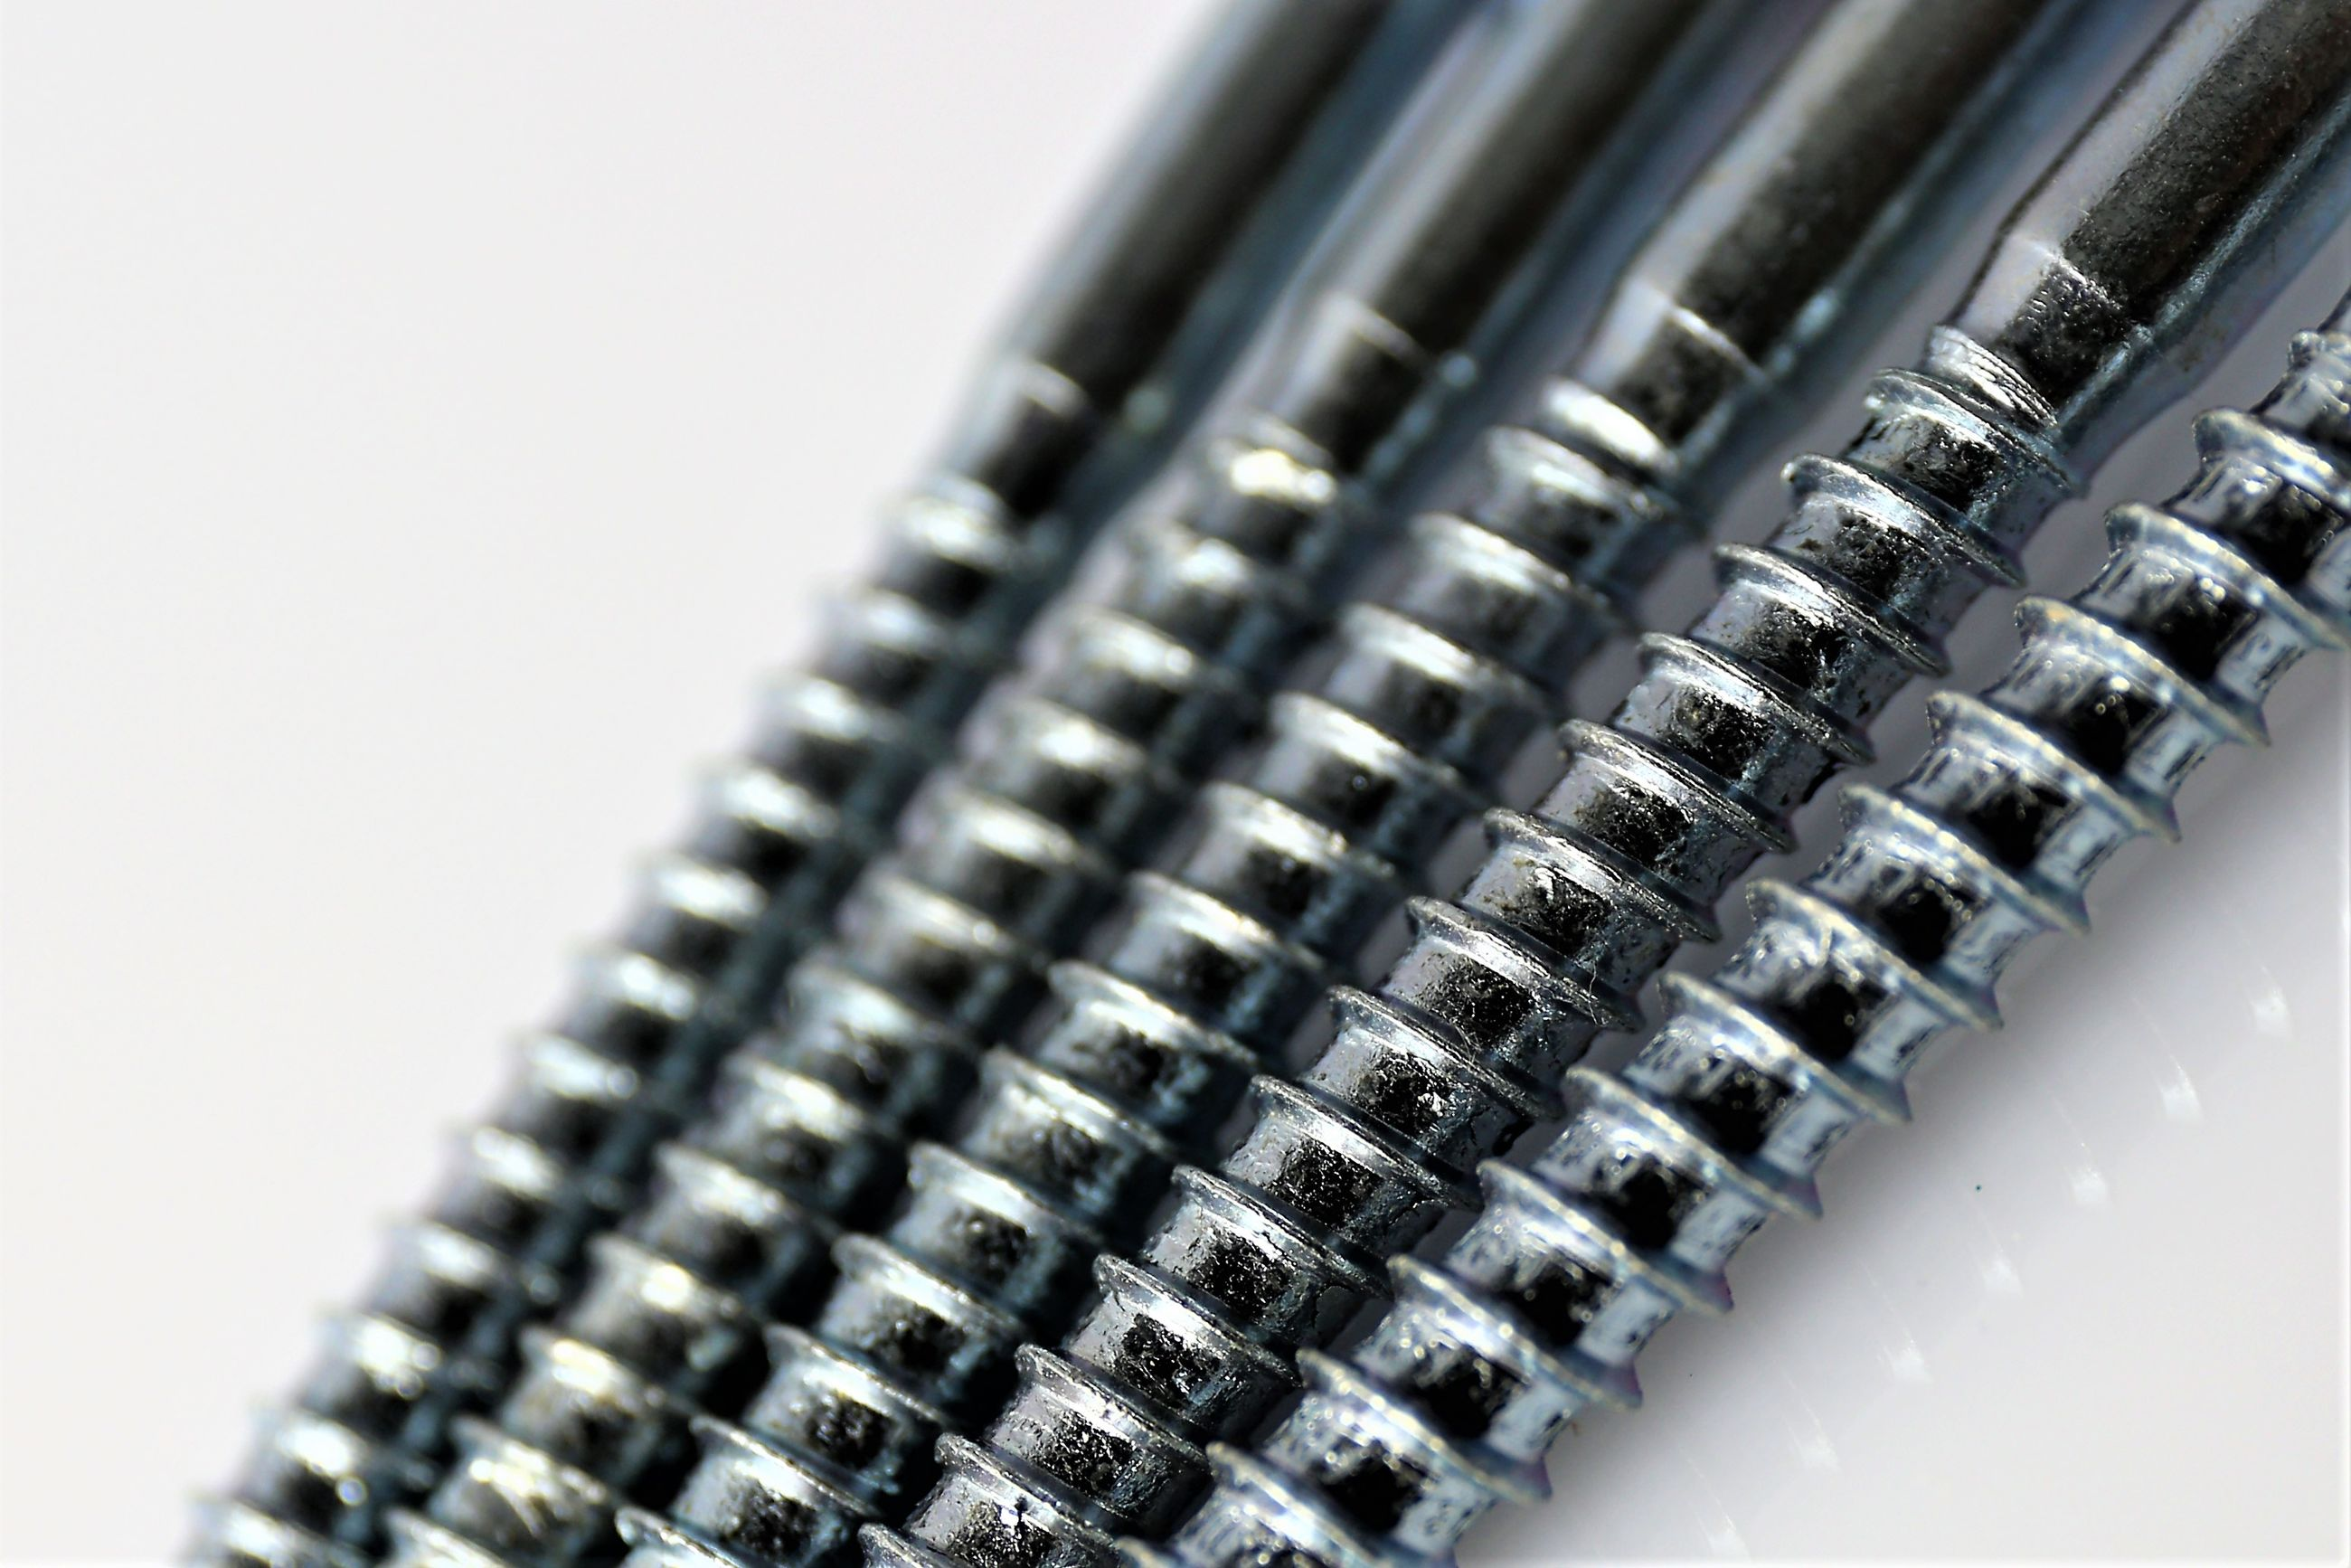 Close-up of screws over white background